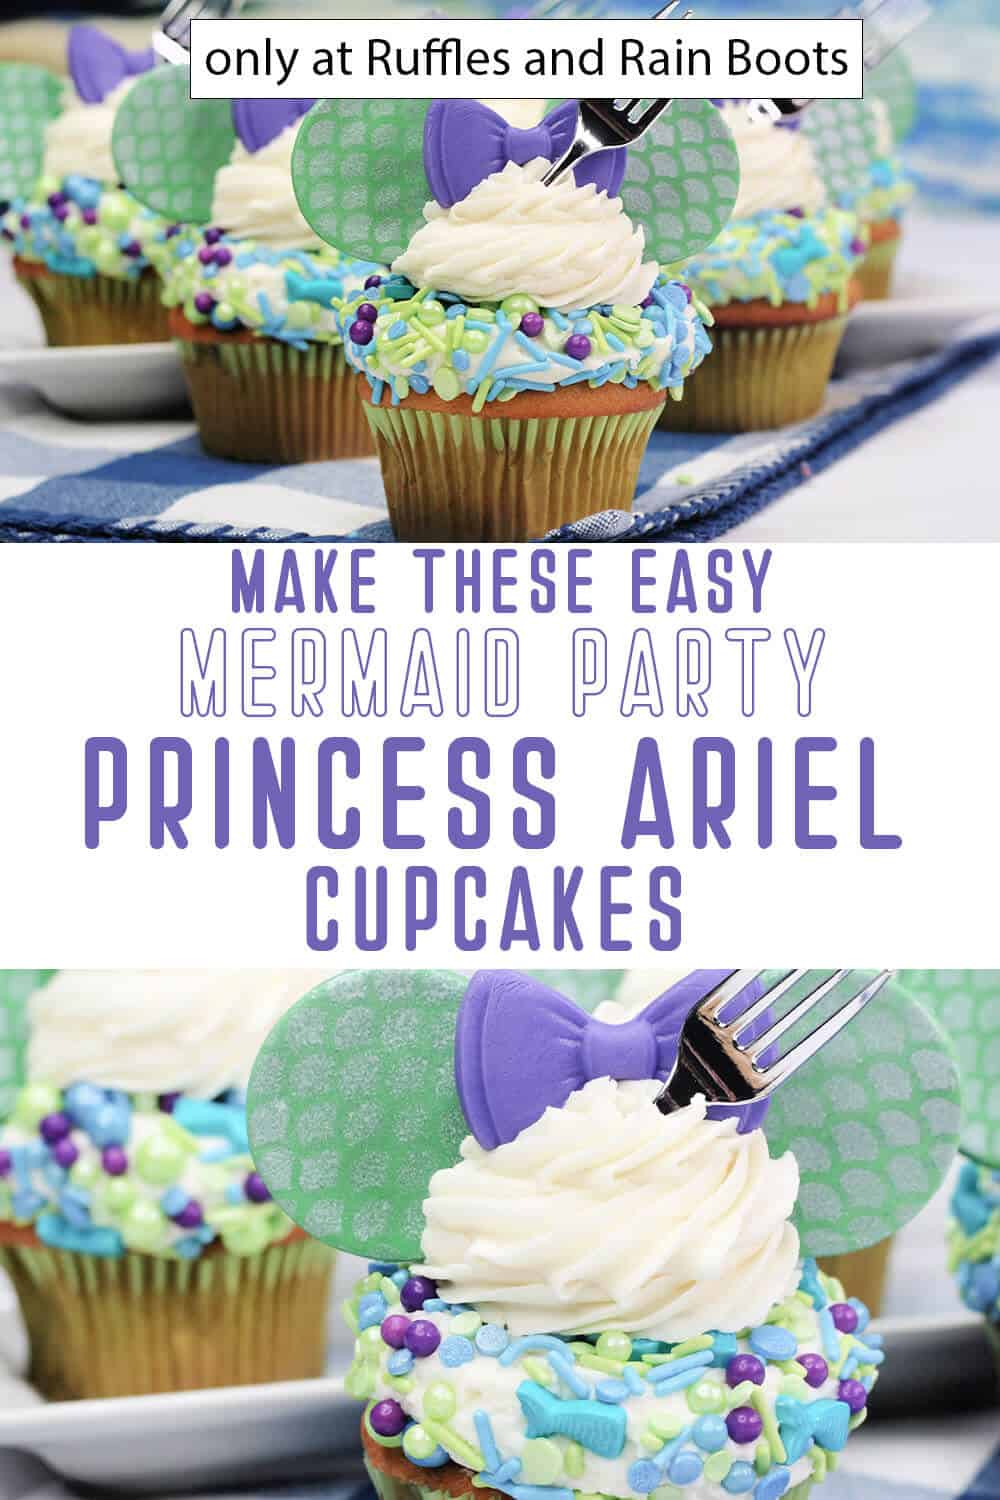 photo collage of disney princess ariel cupcakes with text which reads make these easy mermaid party princess ariel cupcakes